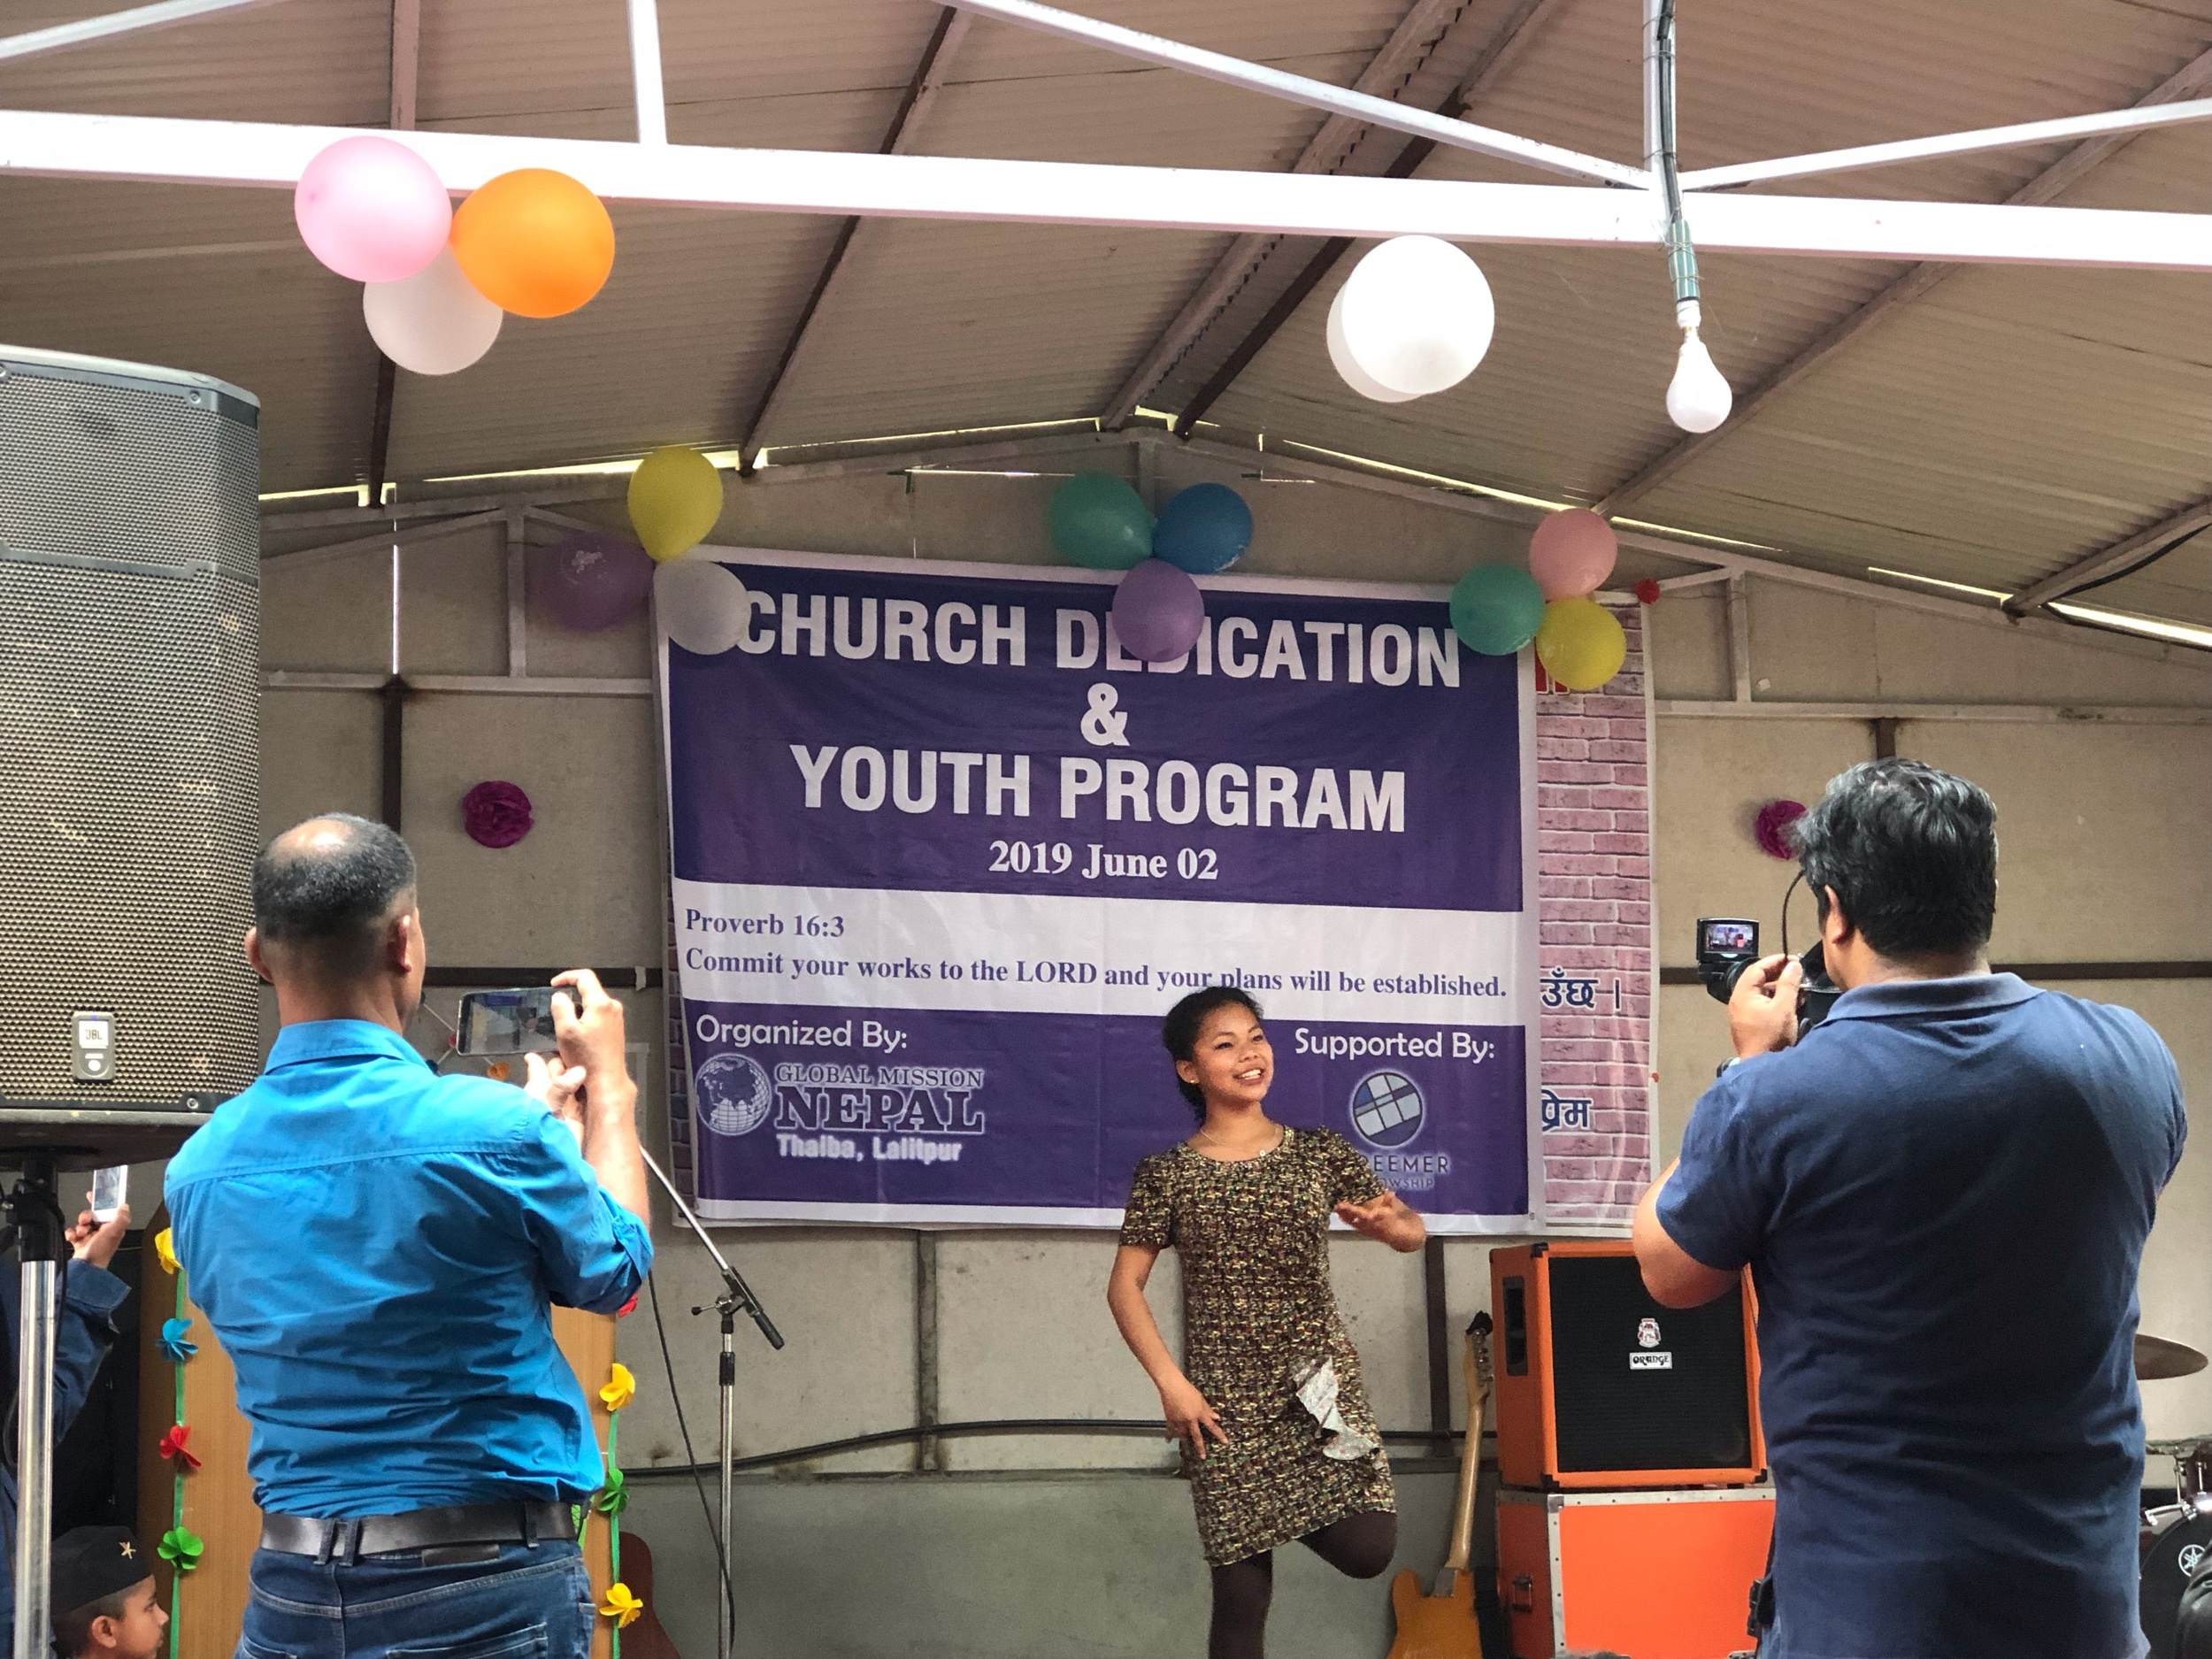 Global Mission Nepal Lalitpur Church Dedication and Youth Program